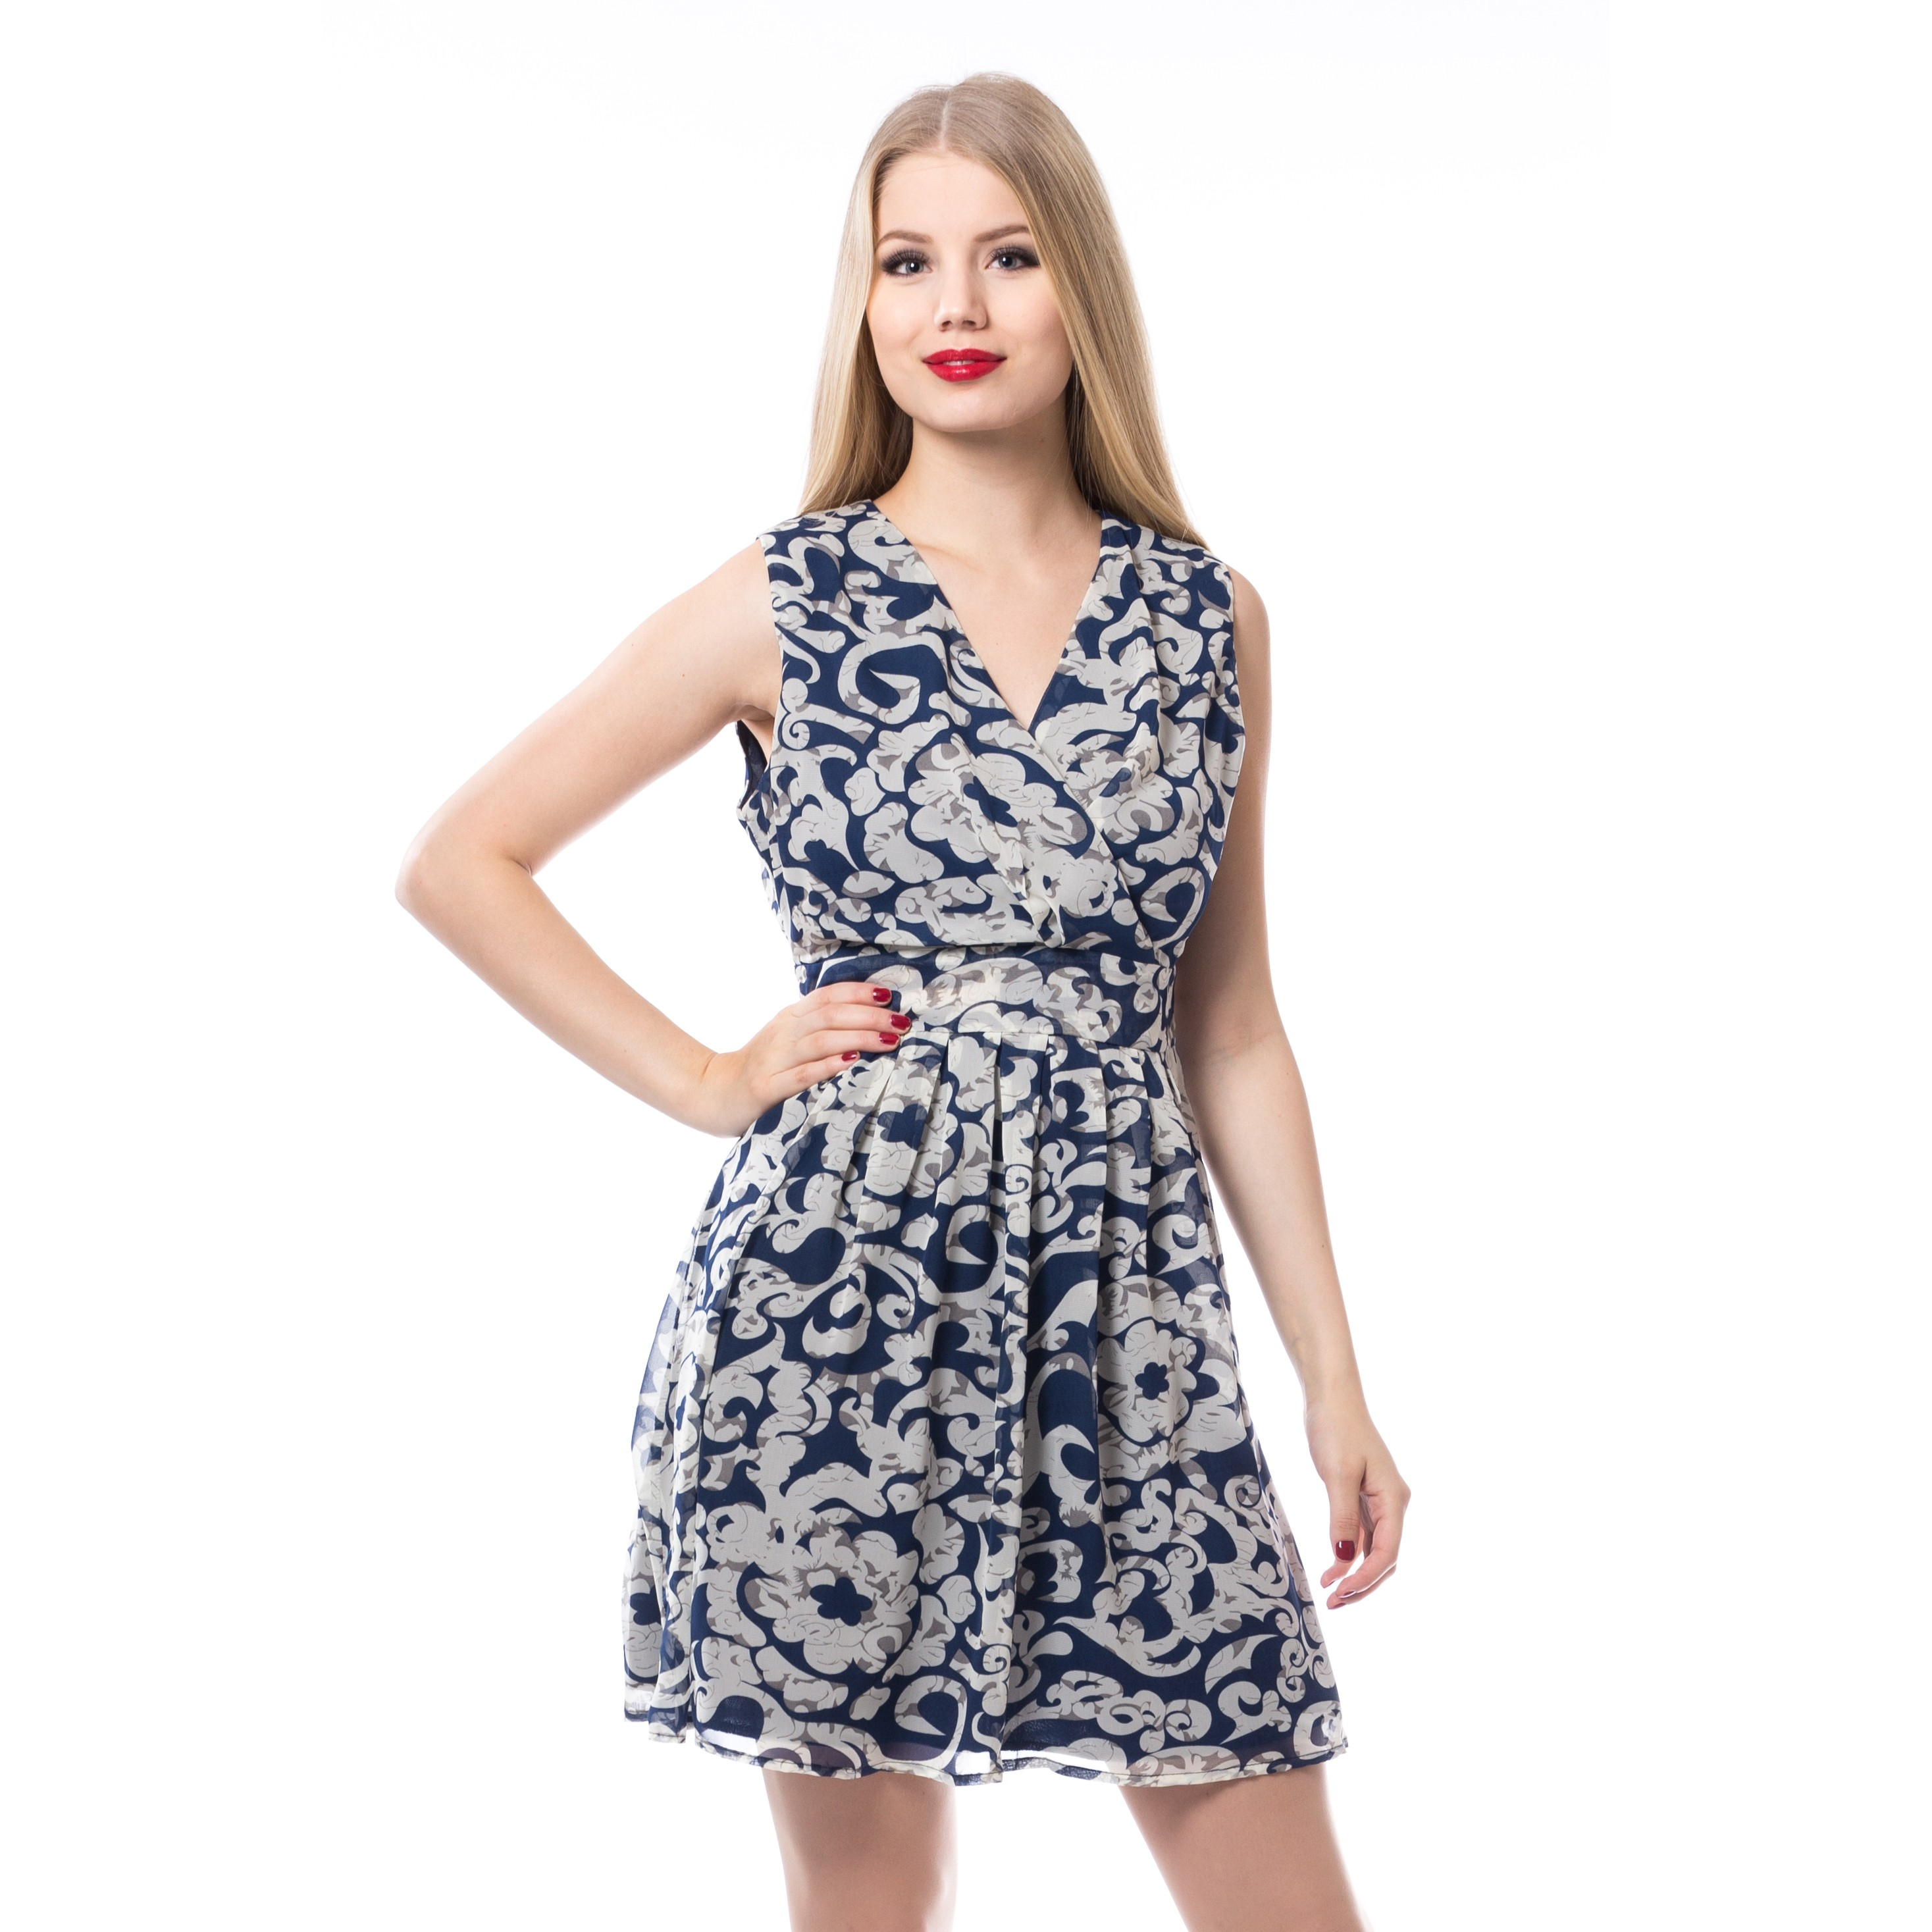 INNOCENT LIFESTY - Elin Dress Ladies Blue *NEW IN-a*